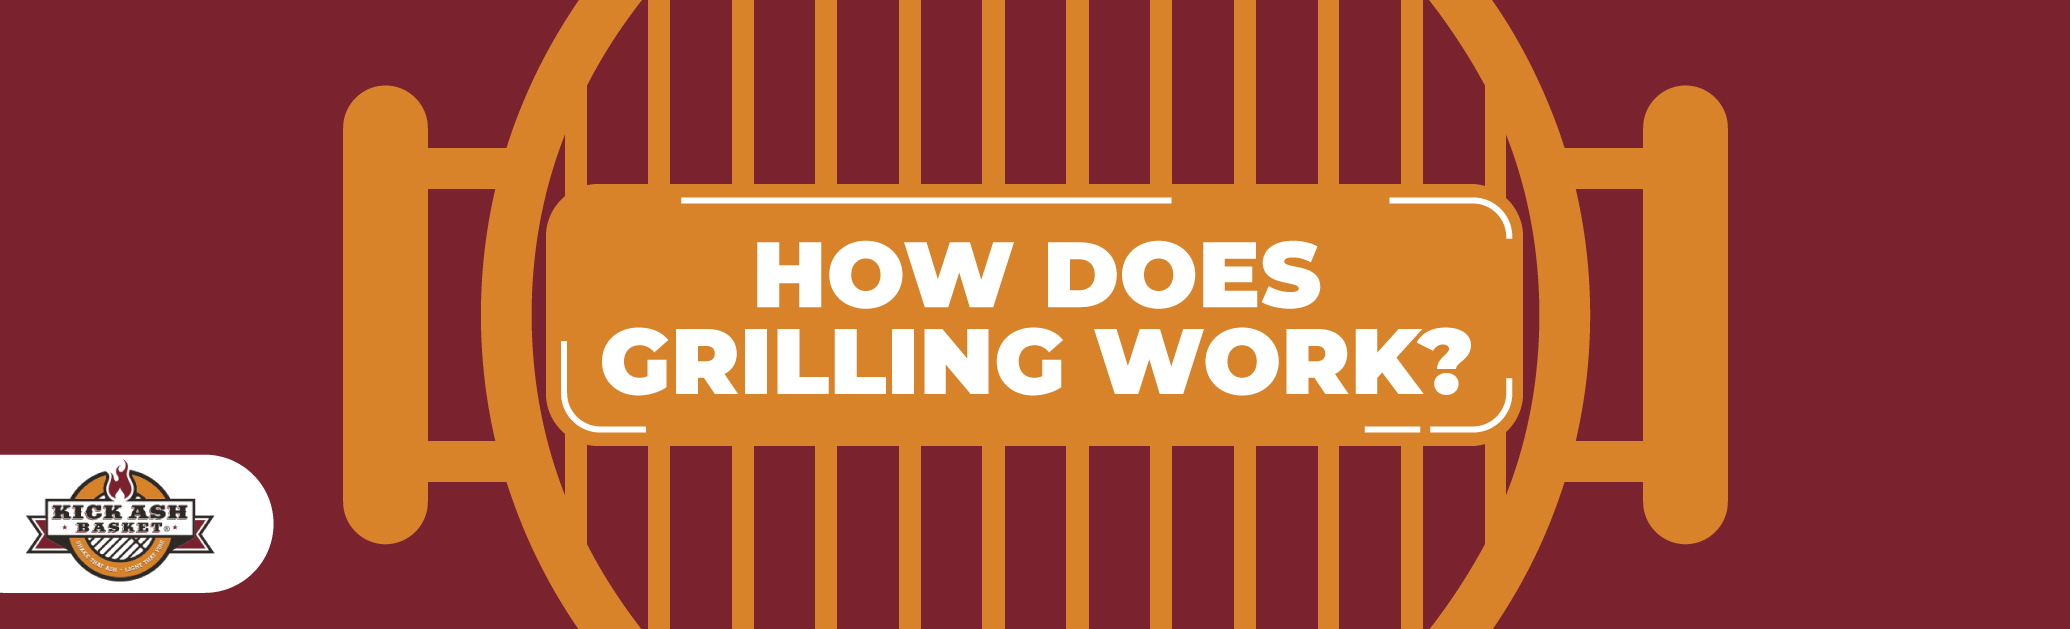 How Does Grilling Work?